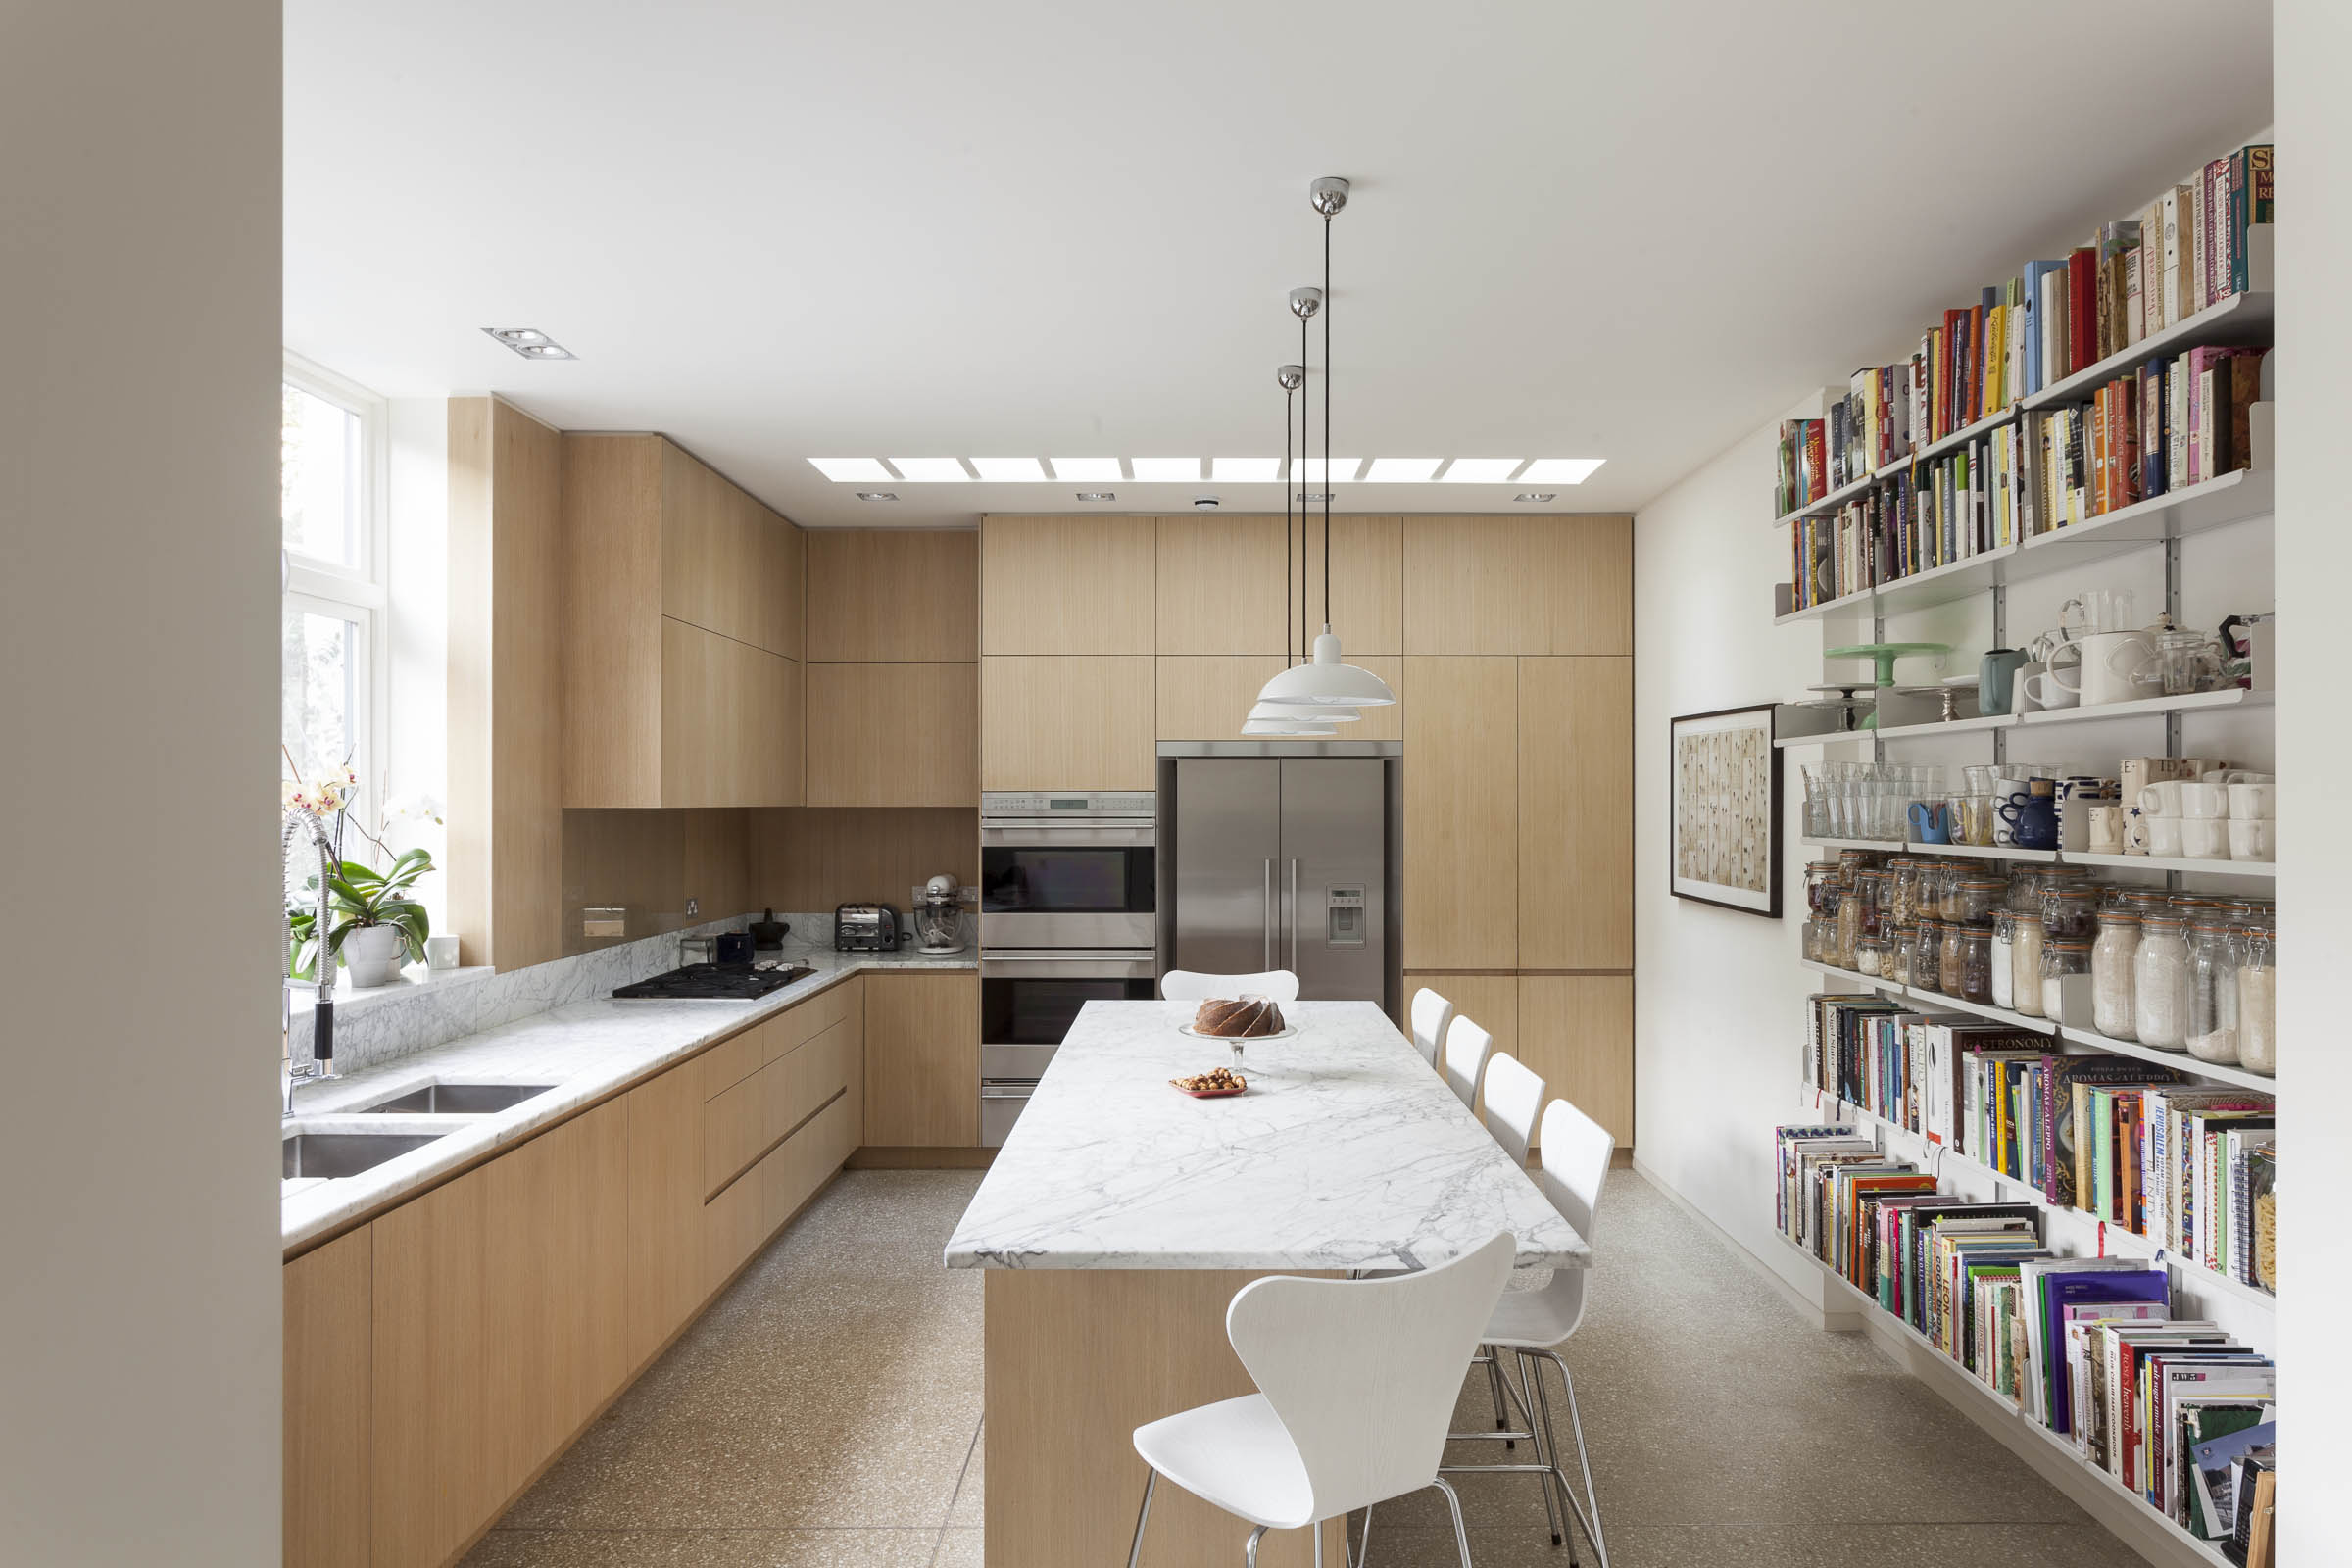 the kitchen where I now bake as photographed by the talented Mat Clayton